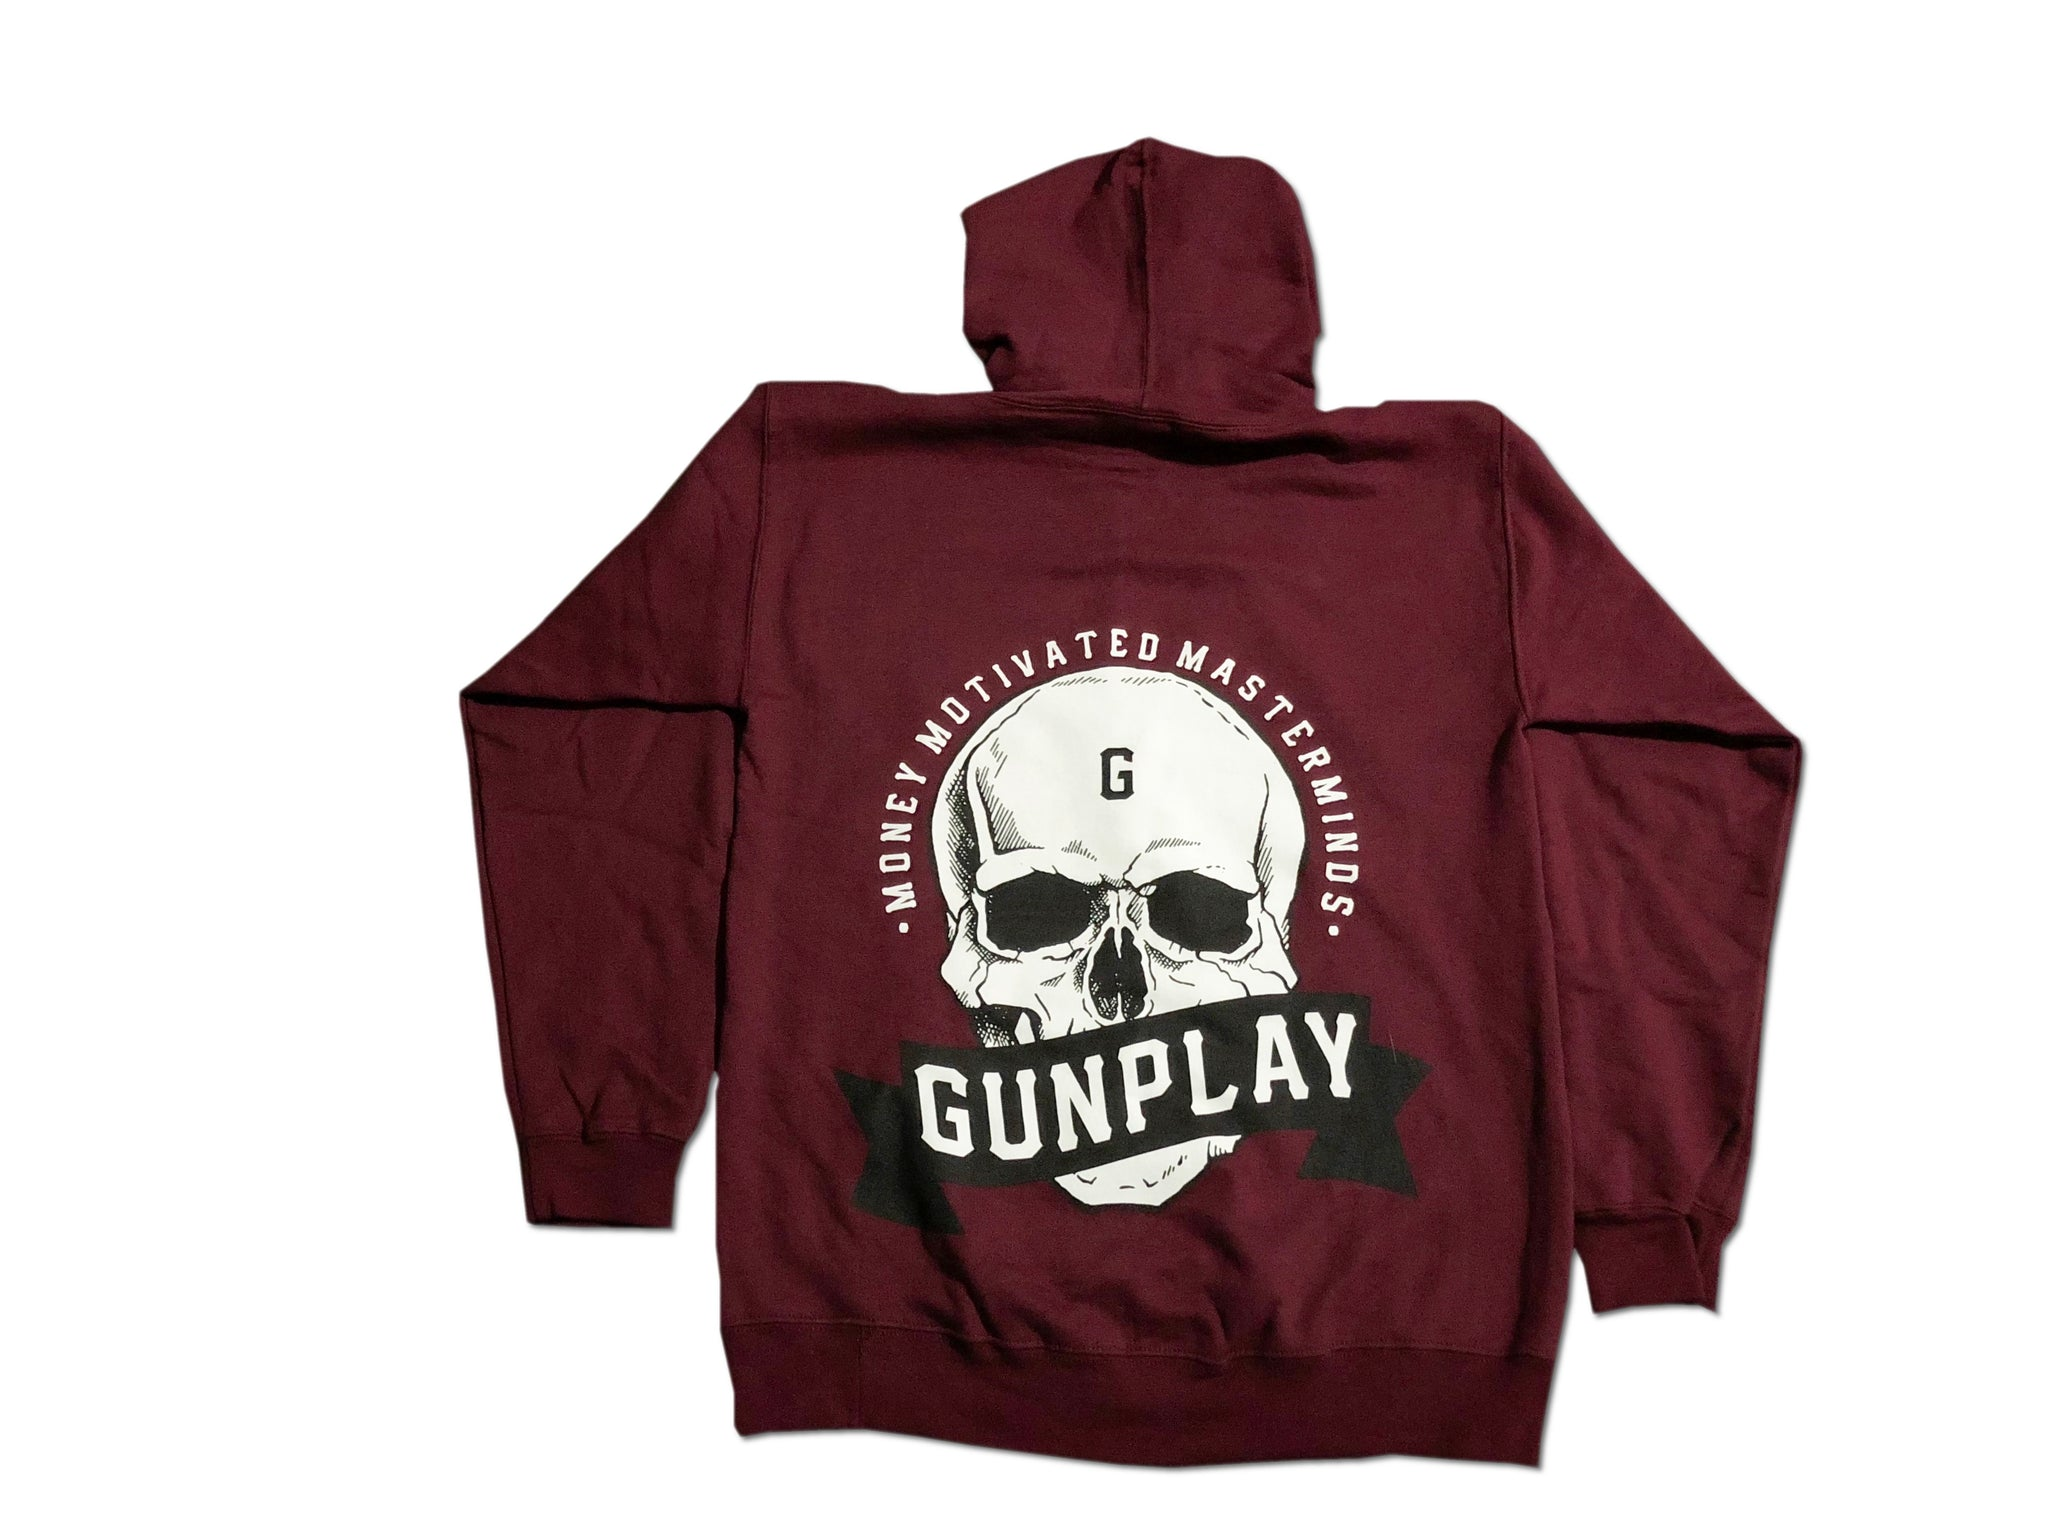 Money Motivated Masterminds Hoodie - Burgundy